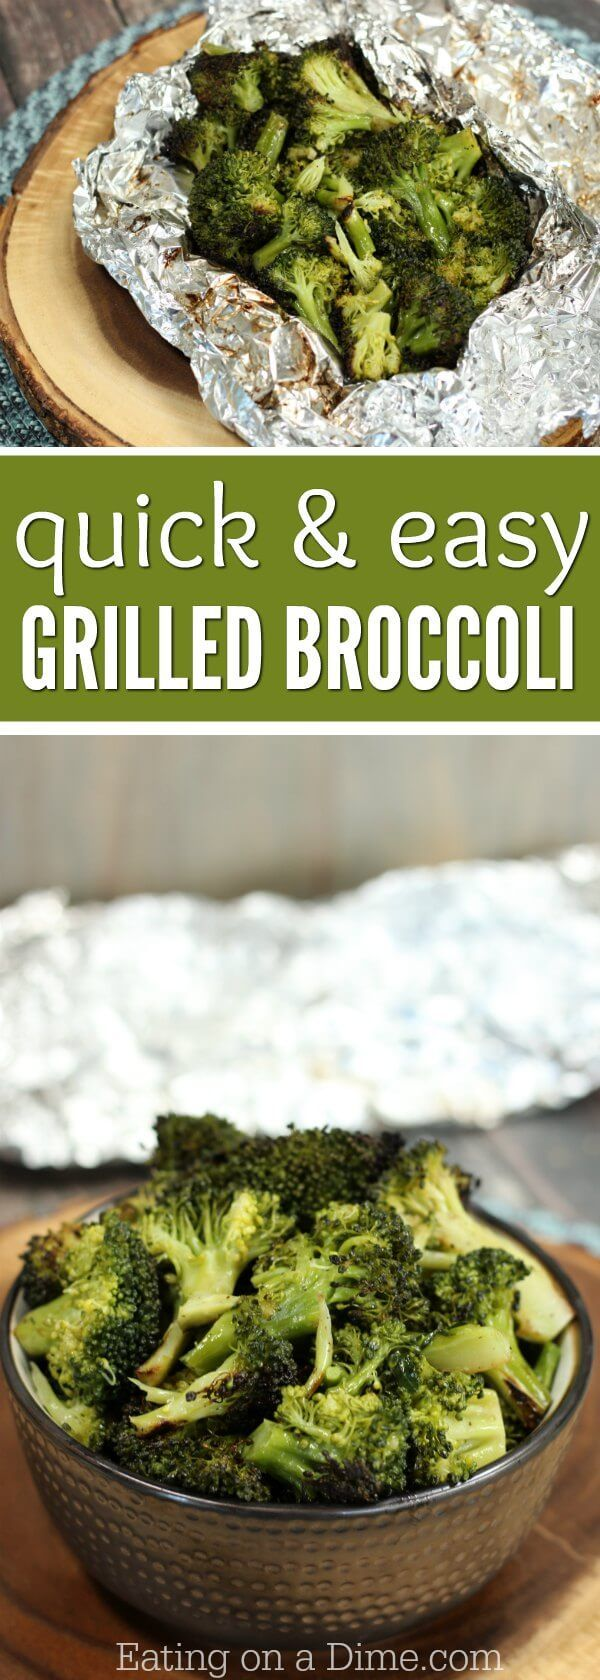 You will love how easy this Grilled Broccoli Side Dish recipe is. The entire family will love this easy grilled broccoli recipe! It's packed with flavor!